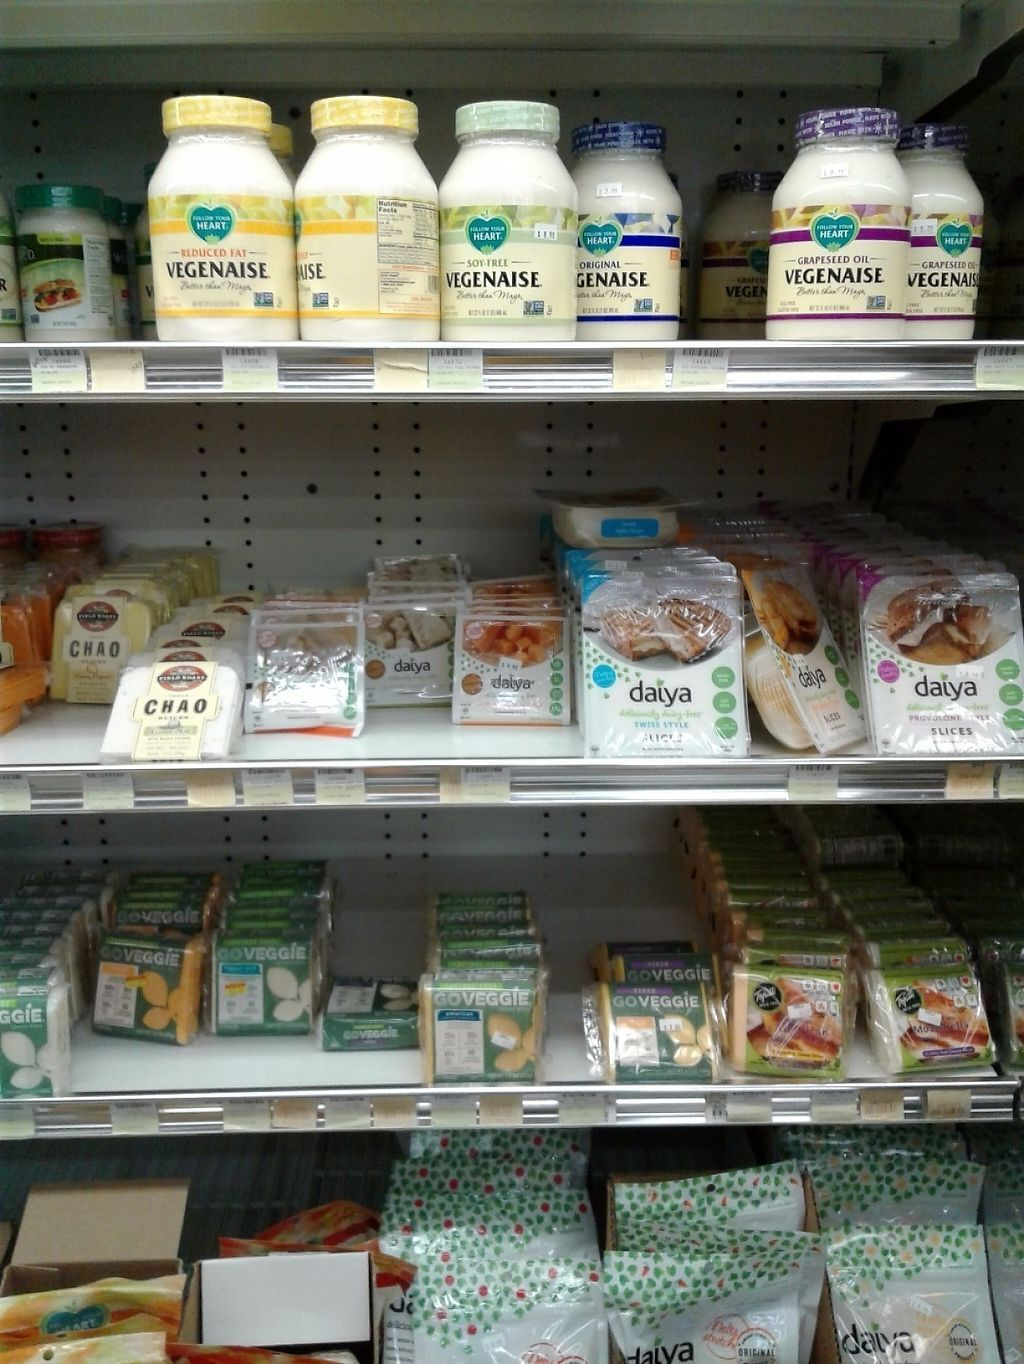 """Photo of La Sierra Natural Foods  by <a href=""""/members/profile/anastronomy"""">anastronomy</a> <br/>Daiya <br/> May 22, 2017  - <a href='/contact/abuse/image/16869/261211'>Report</a>"""